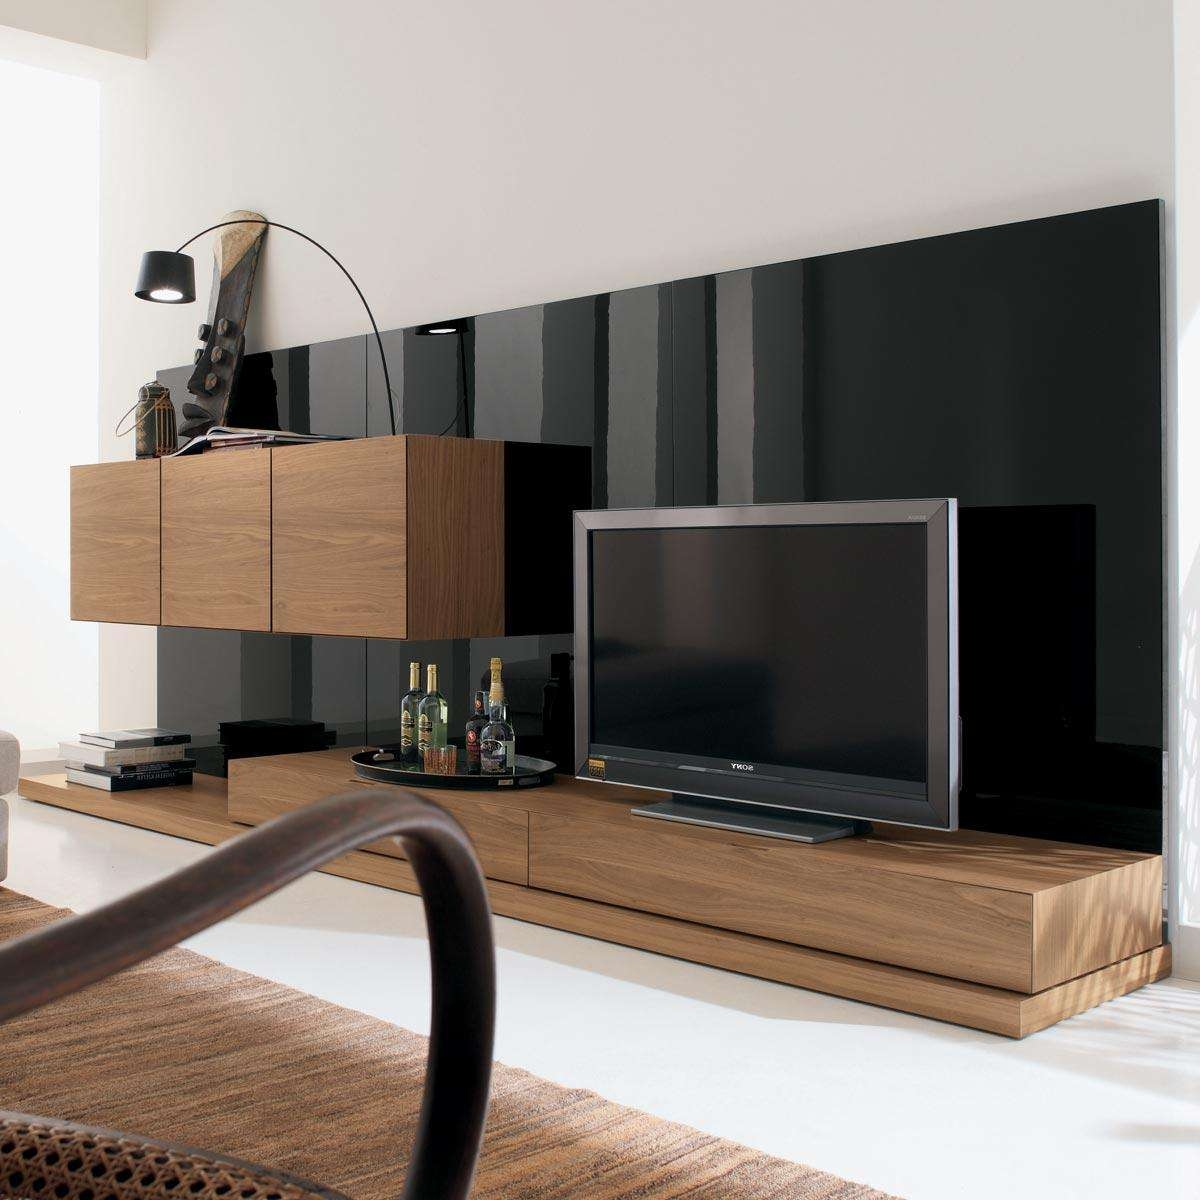 Best Media Cabinet Images Living Room Interior Pictures Modern Regarding Modern Tv Cabinets Designs (View 13 of 20)